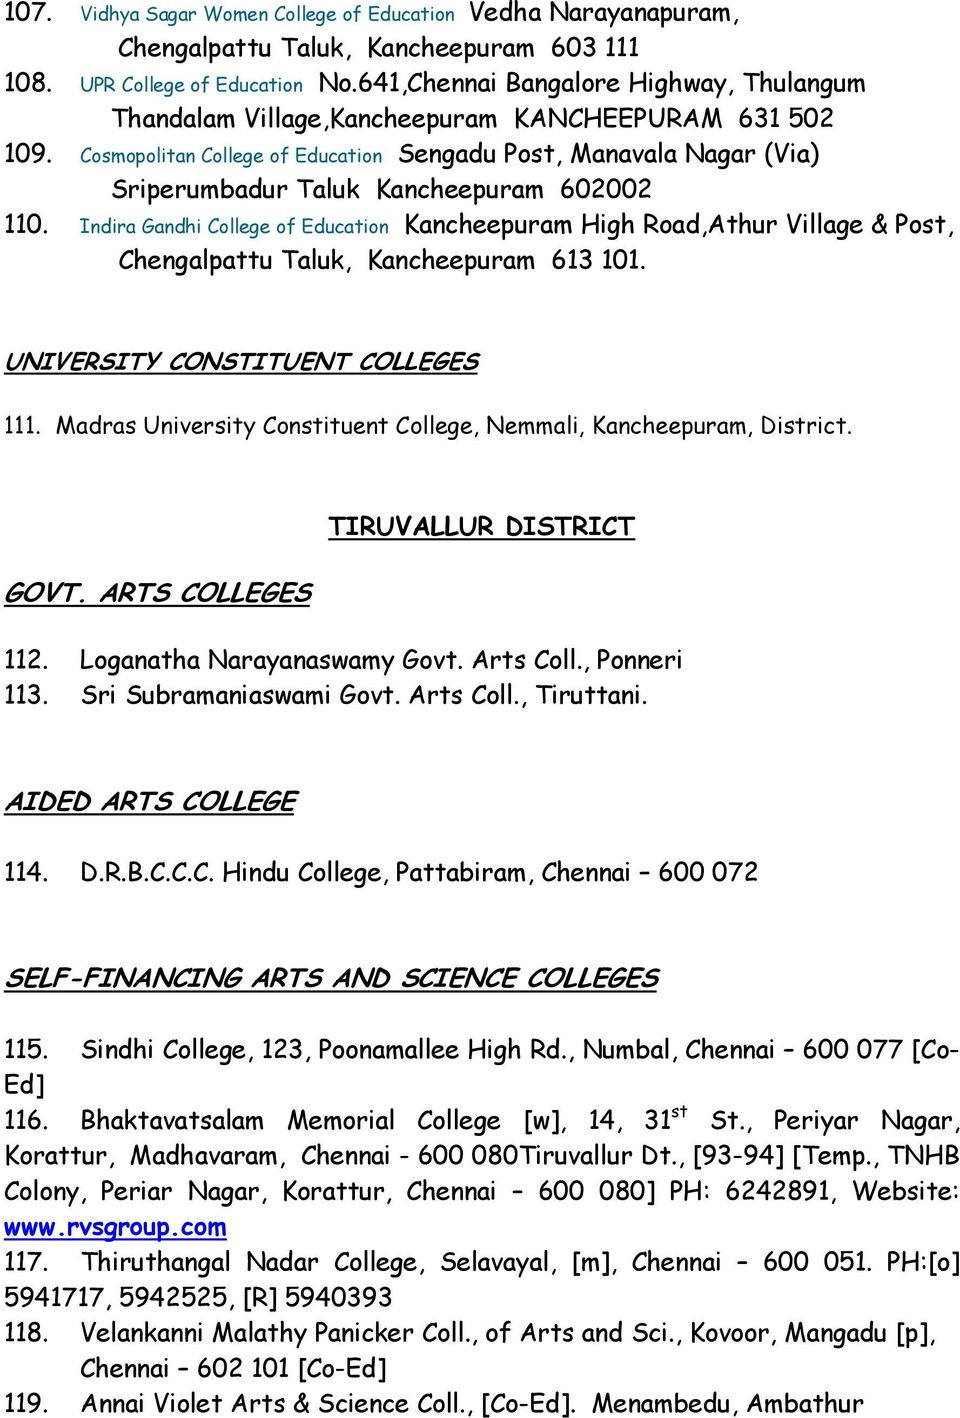 Cosmopolitan College of Education Sengadu Post, Manavala Nagar (Via) Sriperumbadur Taluk Kancheepuram 602002 110.